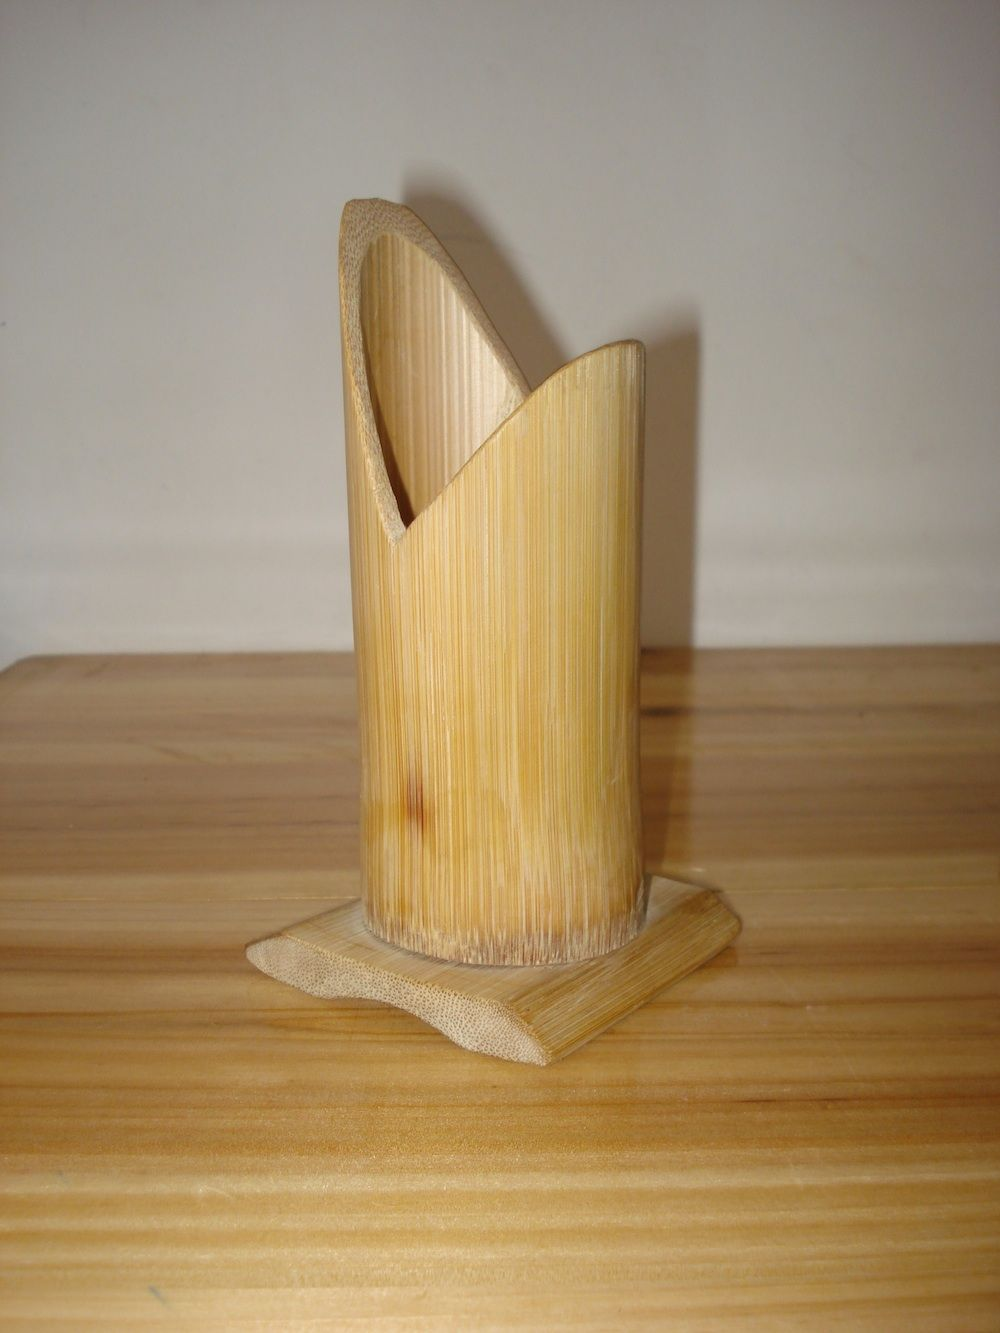 Bamboo candle bamboo projects pinterest for Crafts using bamboo